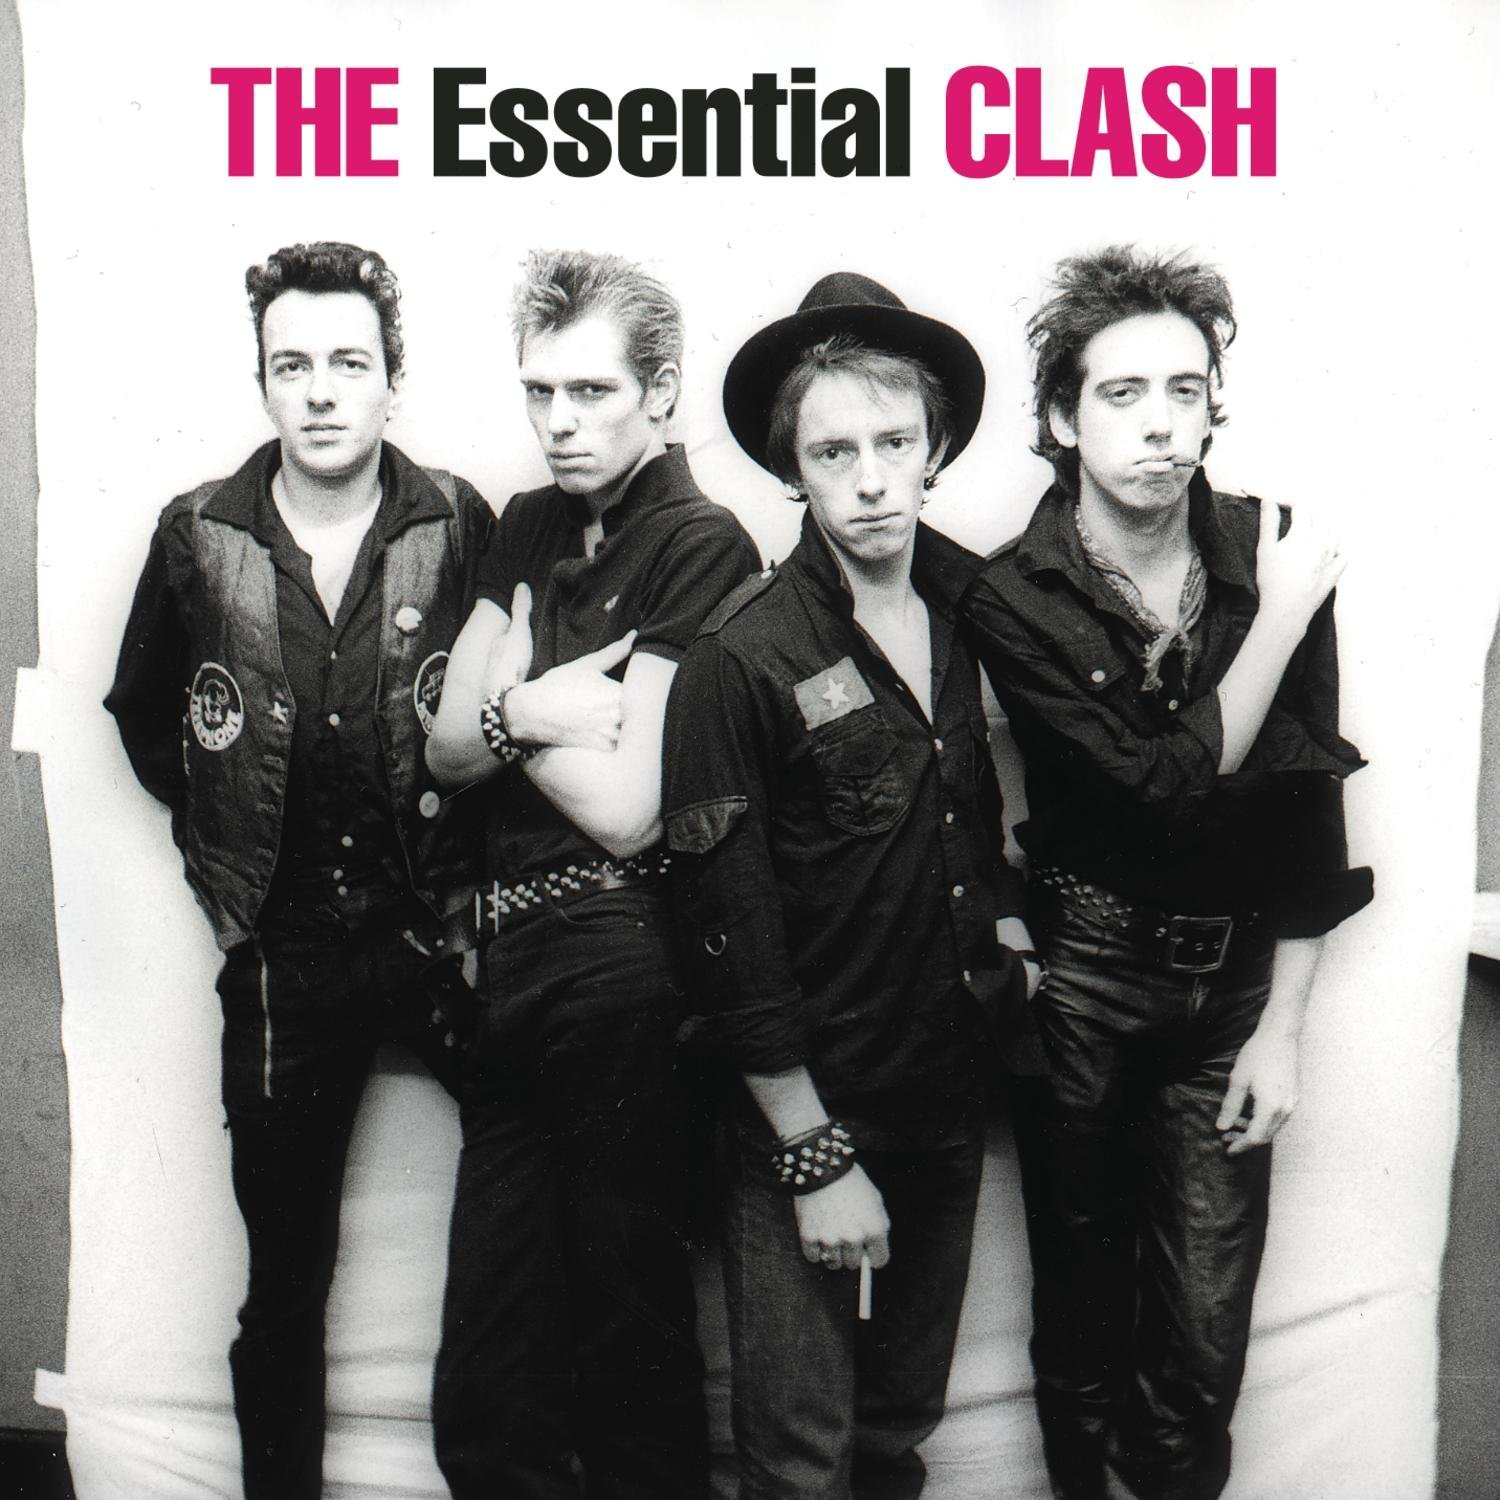 The Essential Clash album cover